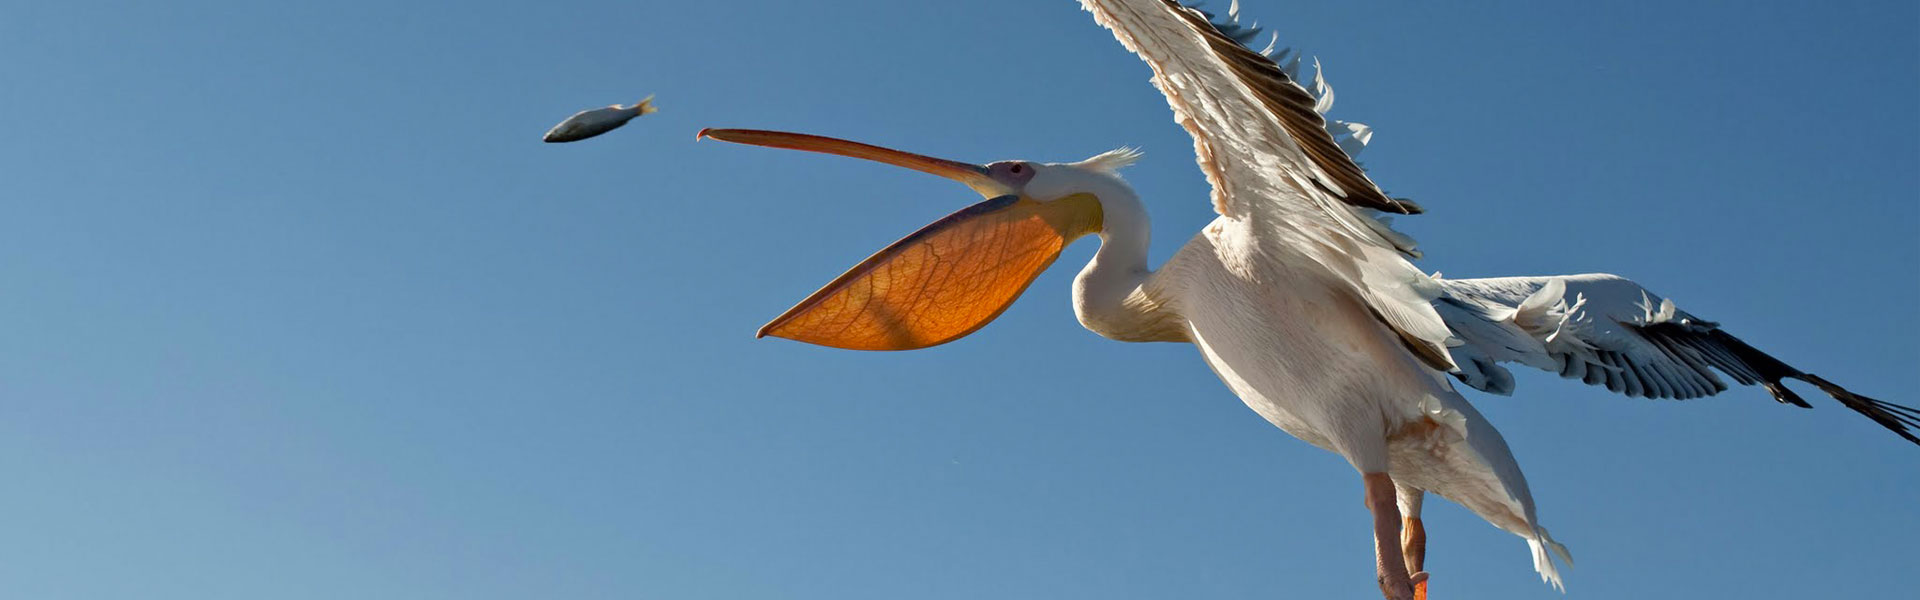 Namibian pelican in flight catching a fish